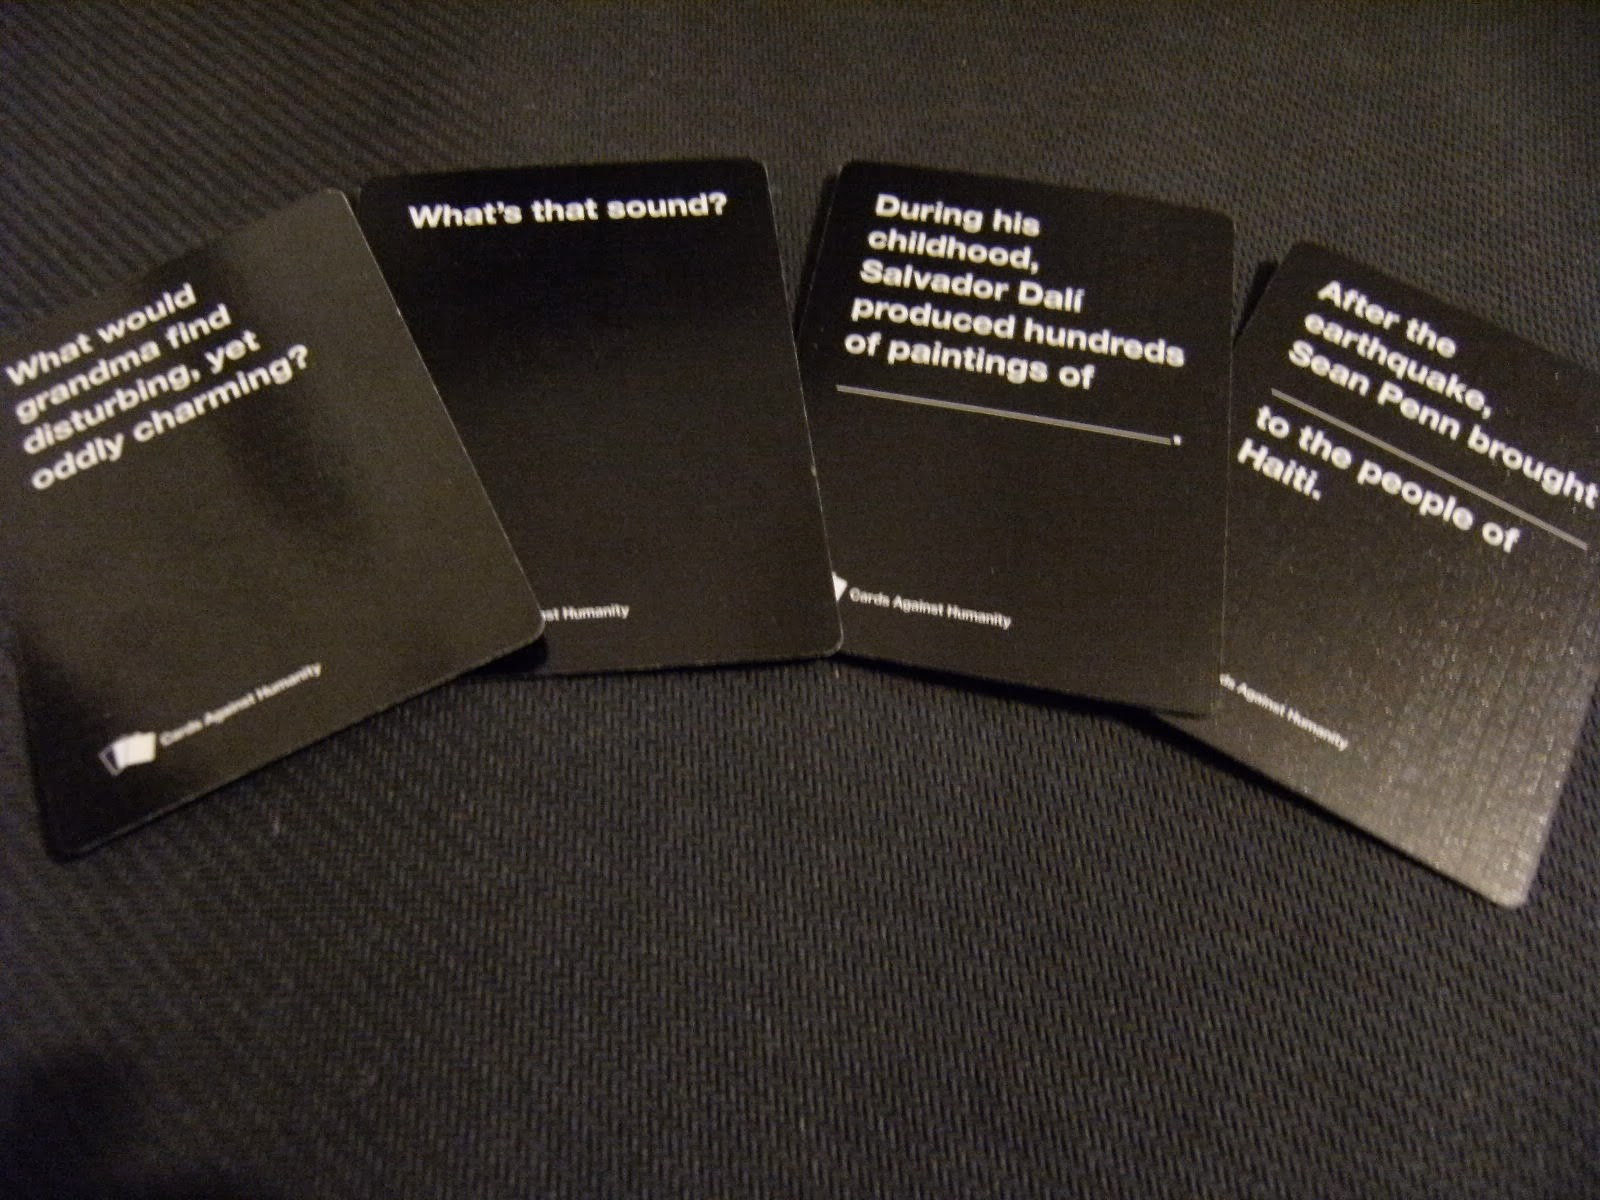 Image of: Combinations The Card Tsar Takes The Top Card Off The Black Deck And Reads It Out To The Rest Of The Group All Of These Cards Take The Form Of Either Question Games Tea Games Tea Cards Against Humanity Party Game For Horrible